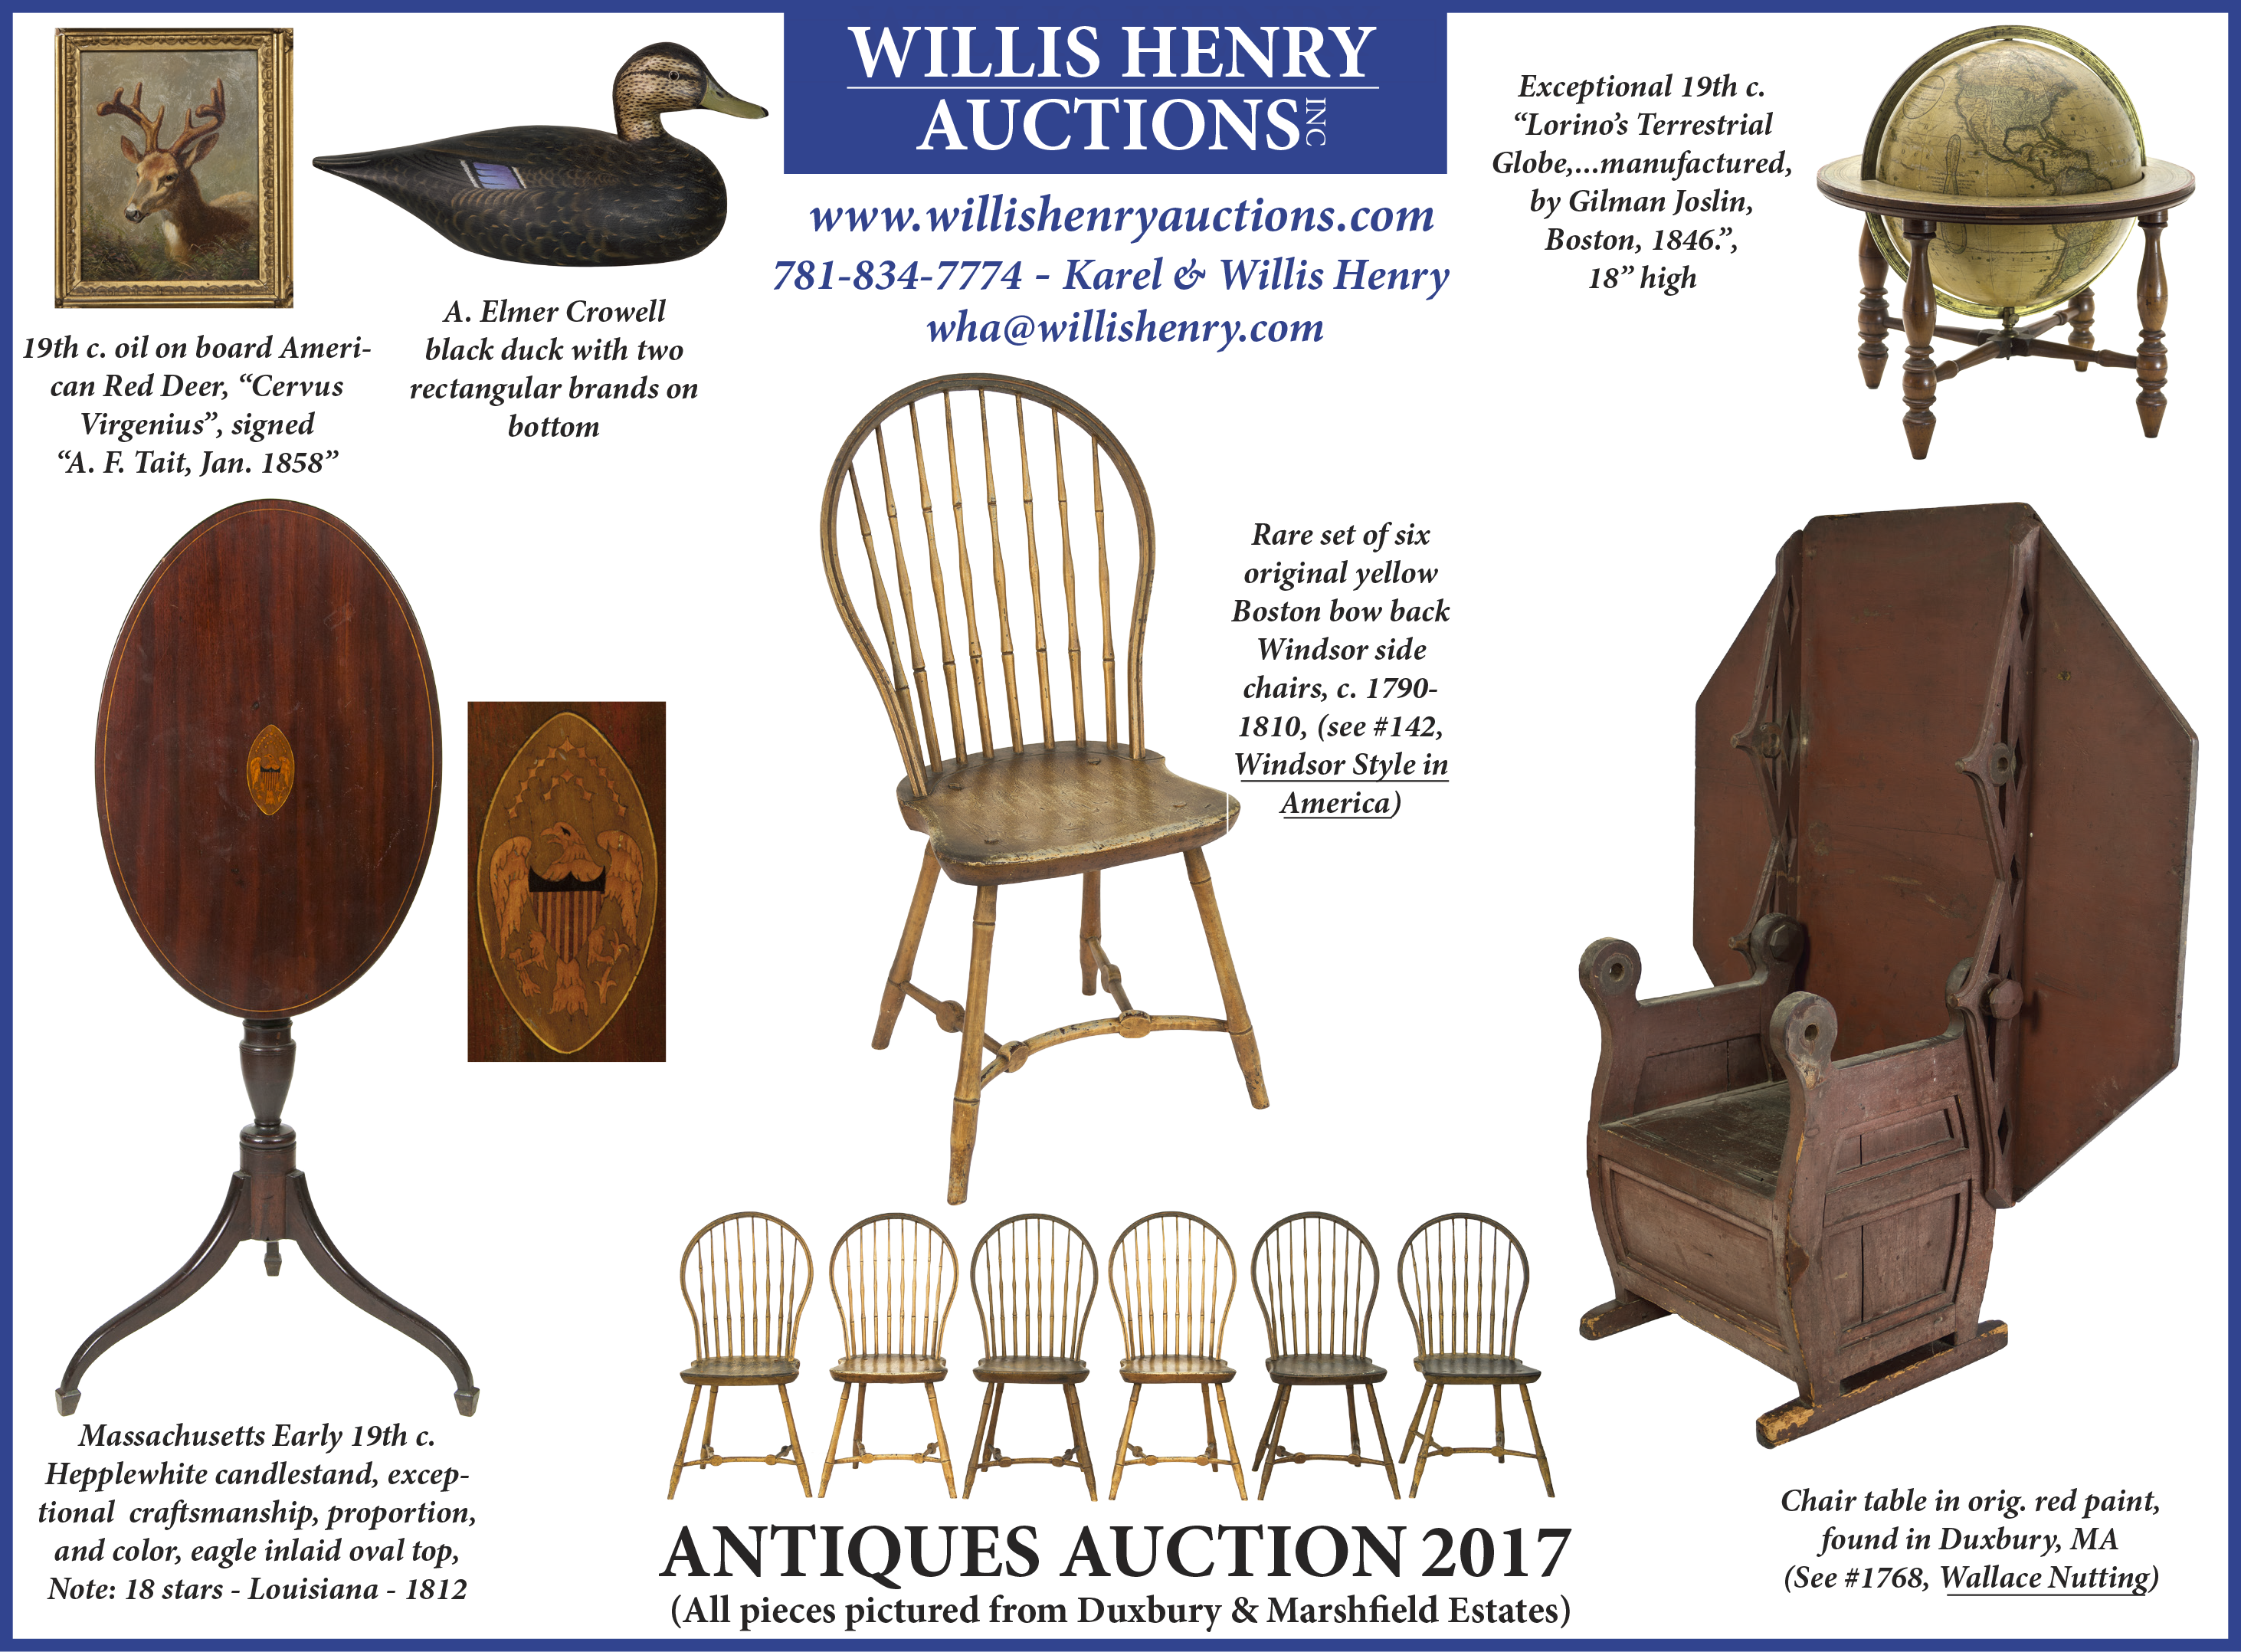 antiques auction – march 19, 2017 | willis henry auctions, inc.